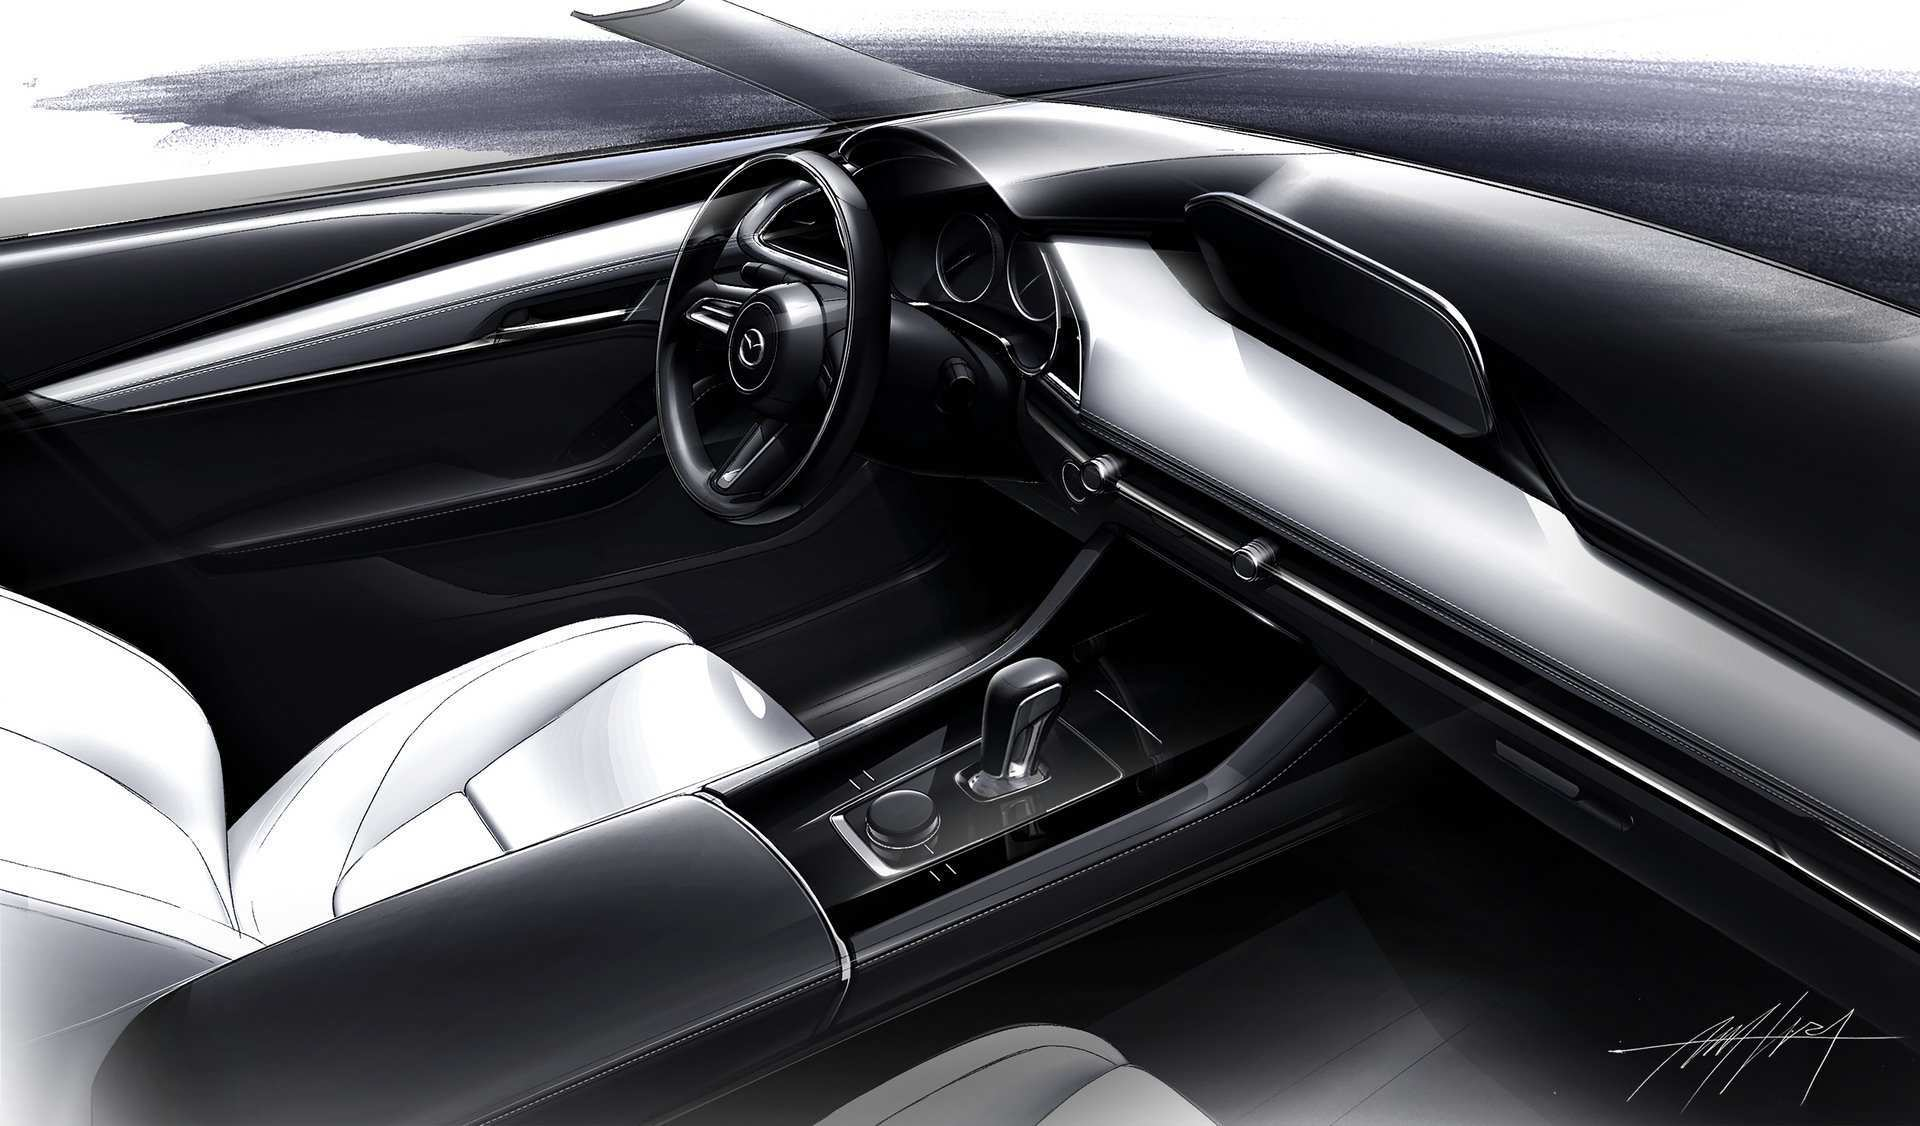 25 A Mazda 3 2019 Interior Wallpaper